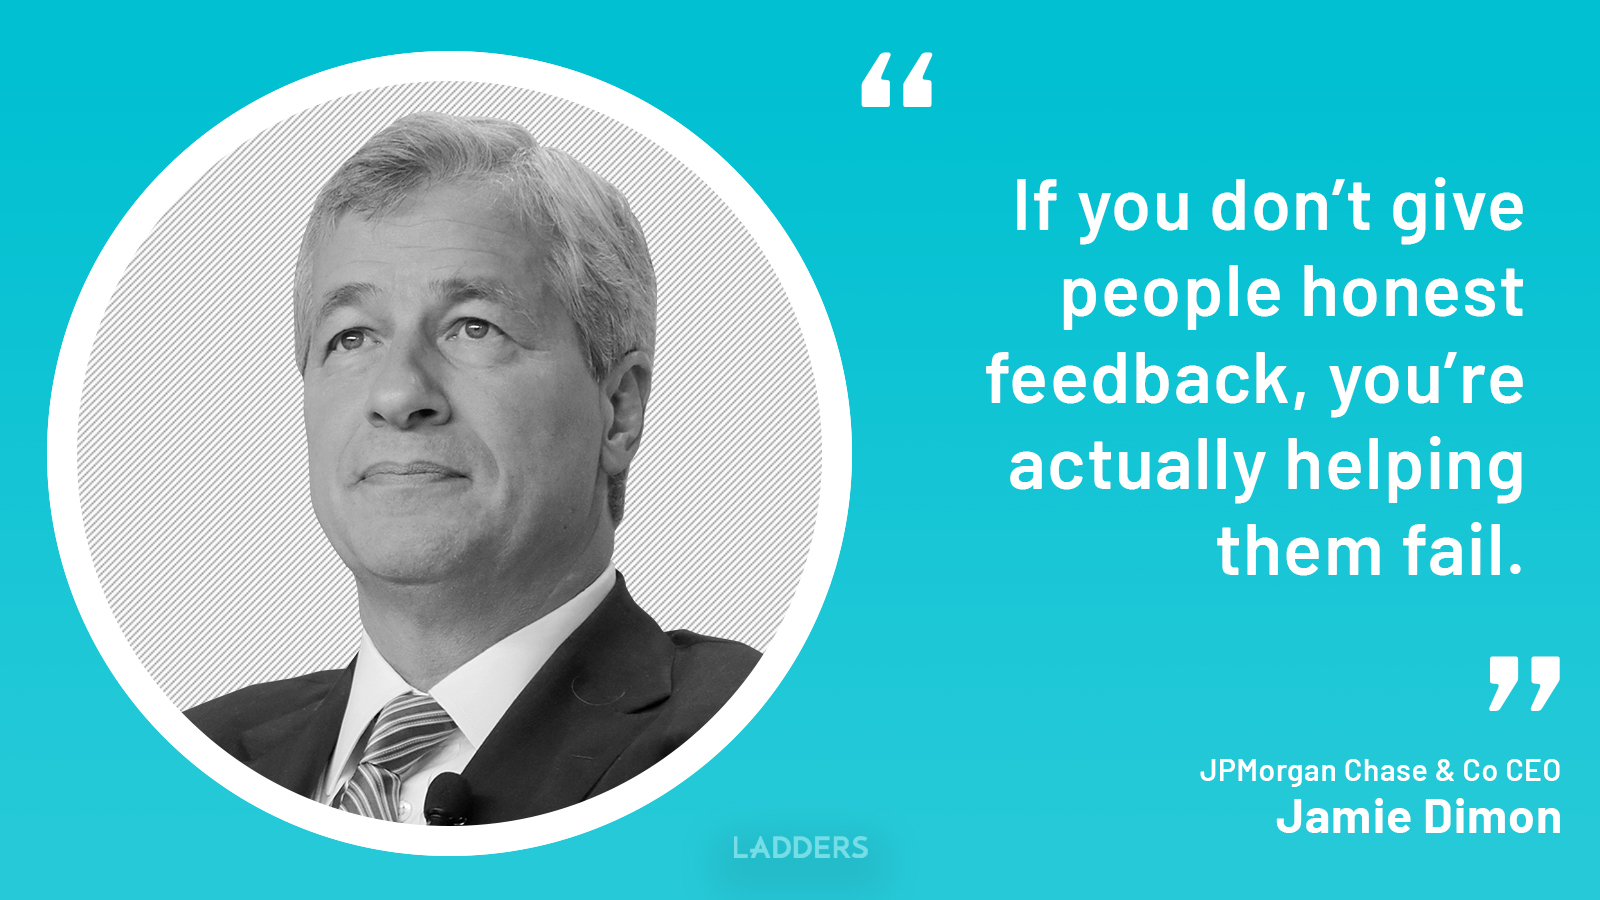 JPMorgan Chase & Co CEO Jamie Dimon on financial philanthropy and changing healthcare